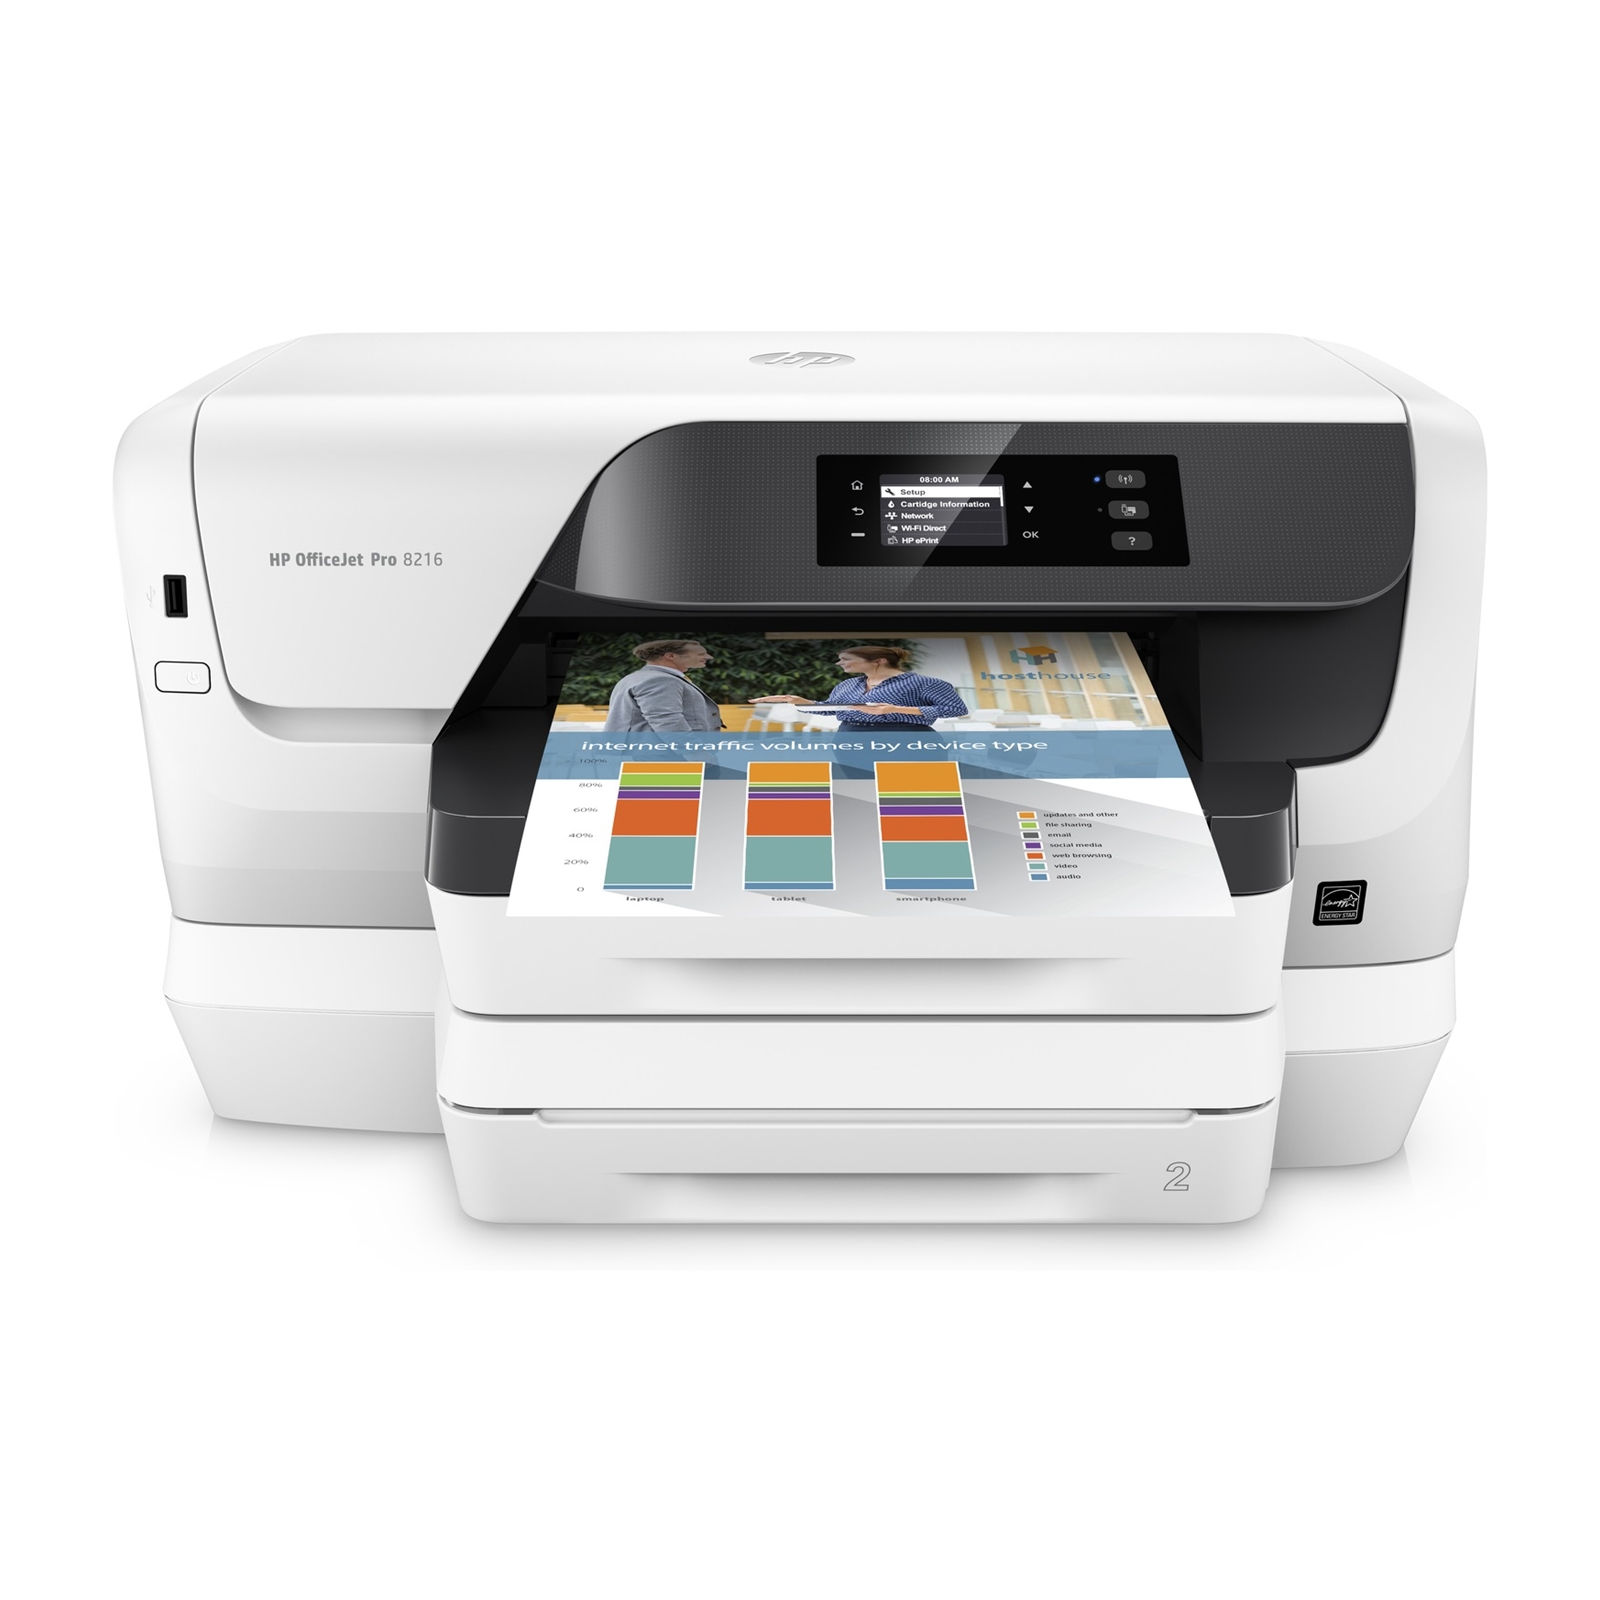 Hewlett Packard InkJet Printers J3P68A#A81 | Servers Plus